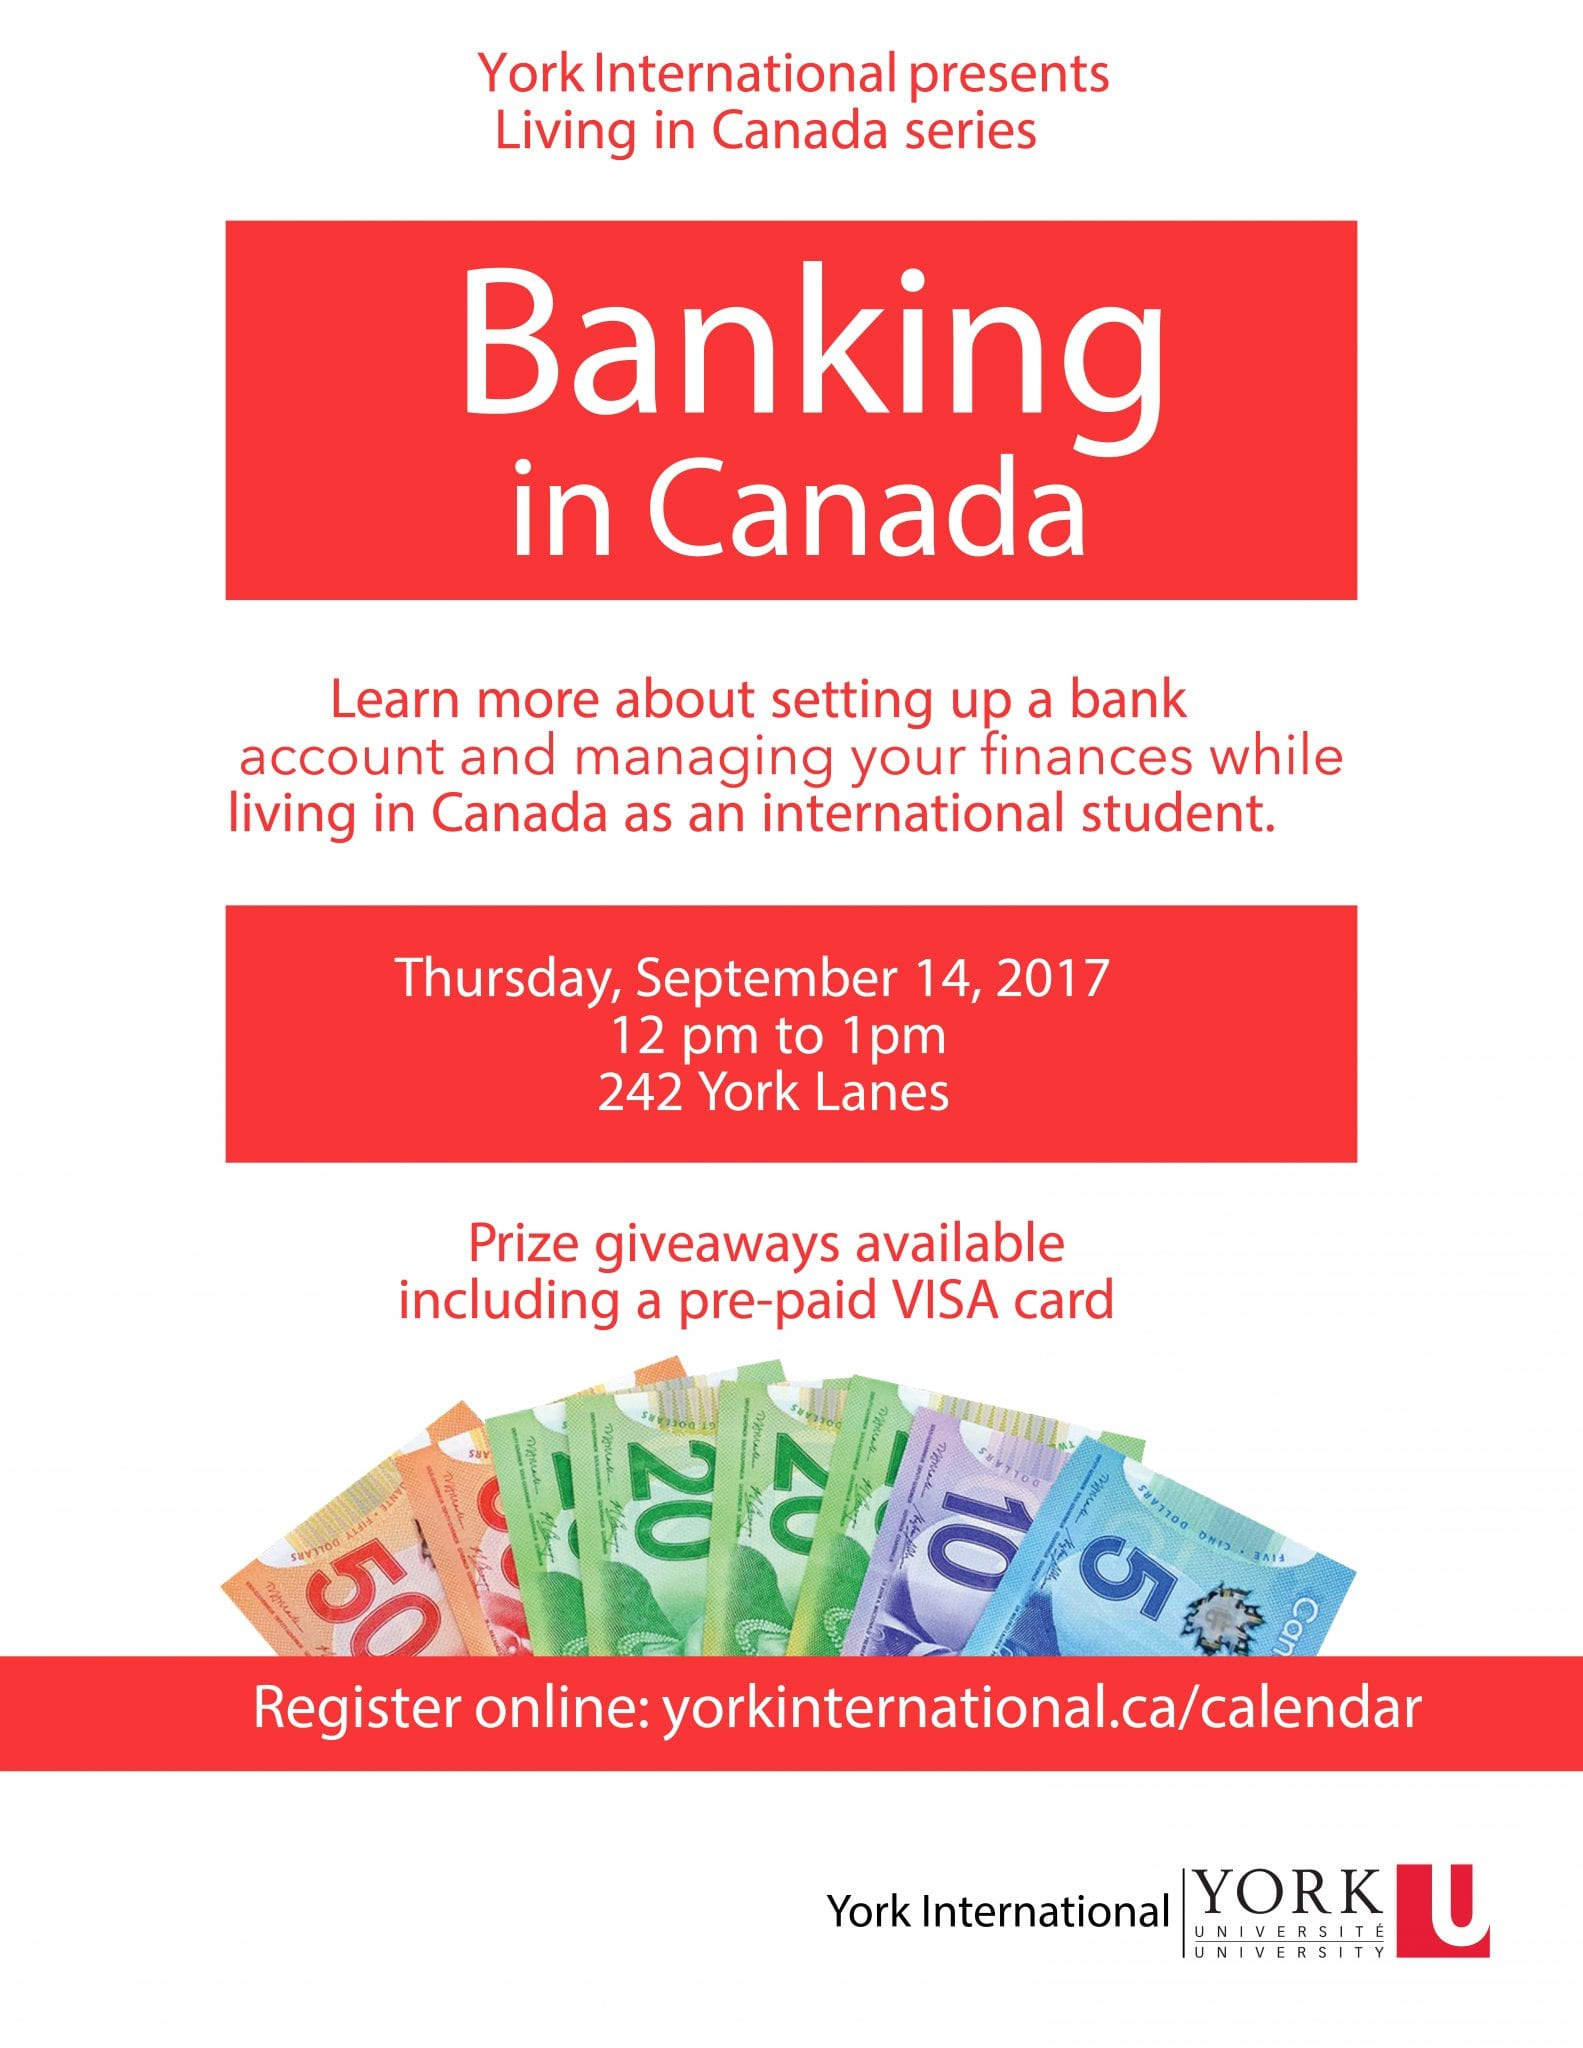 Banking in Canada @ 242 York Lanes